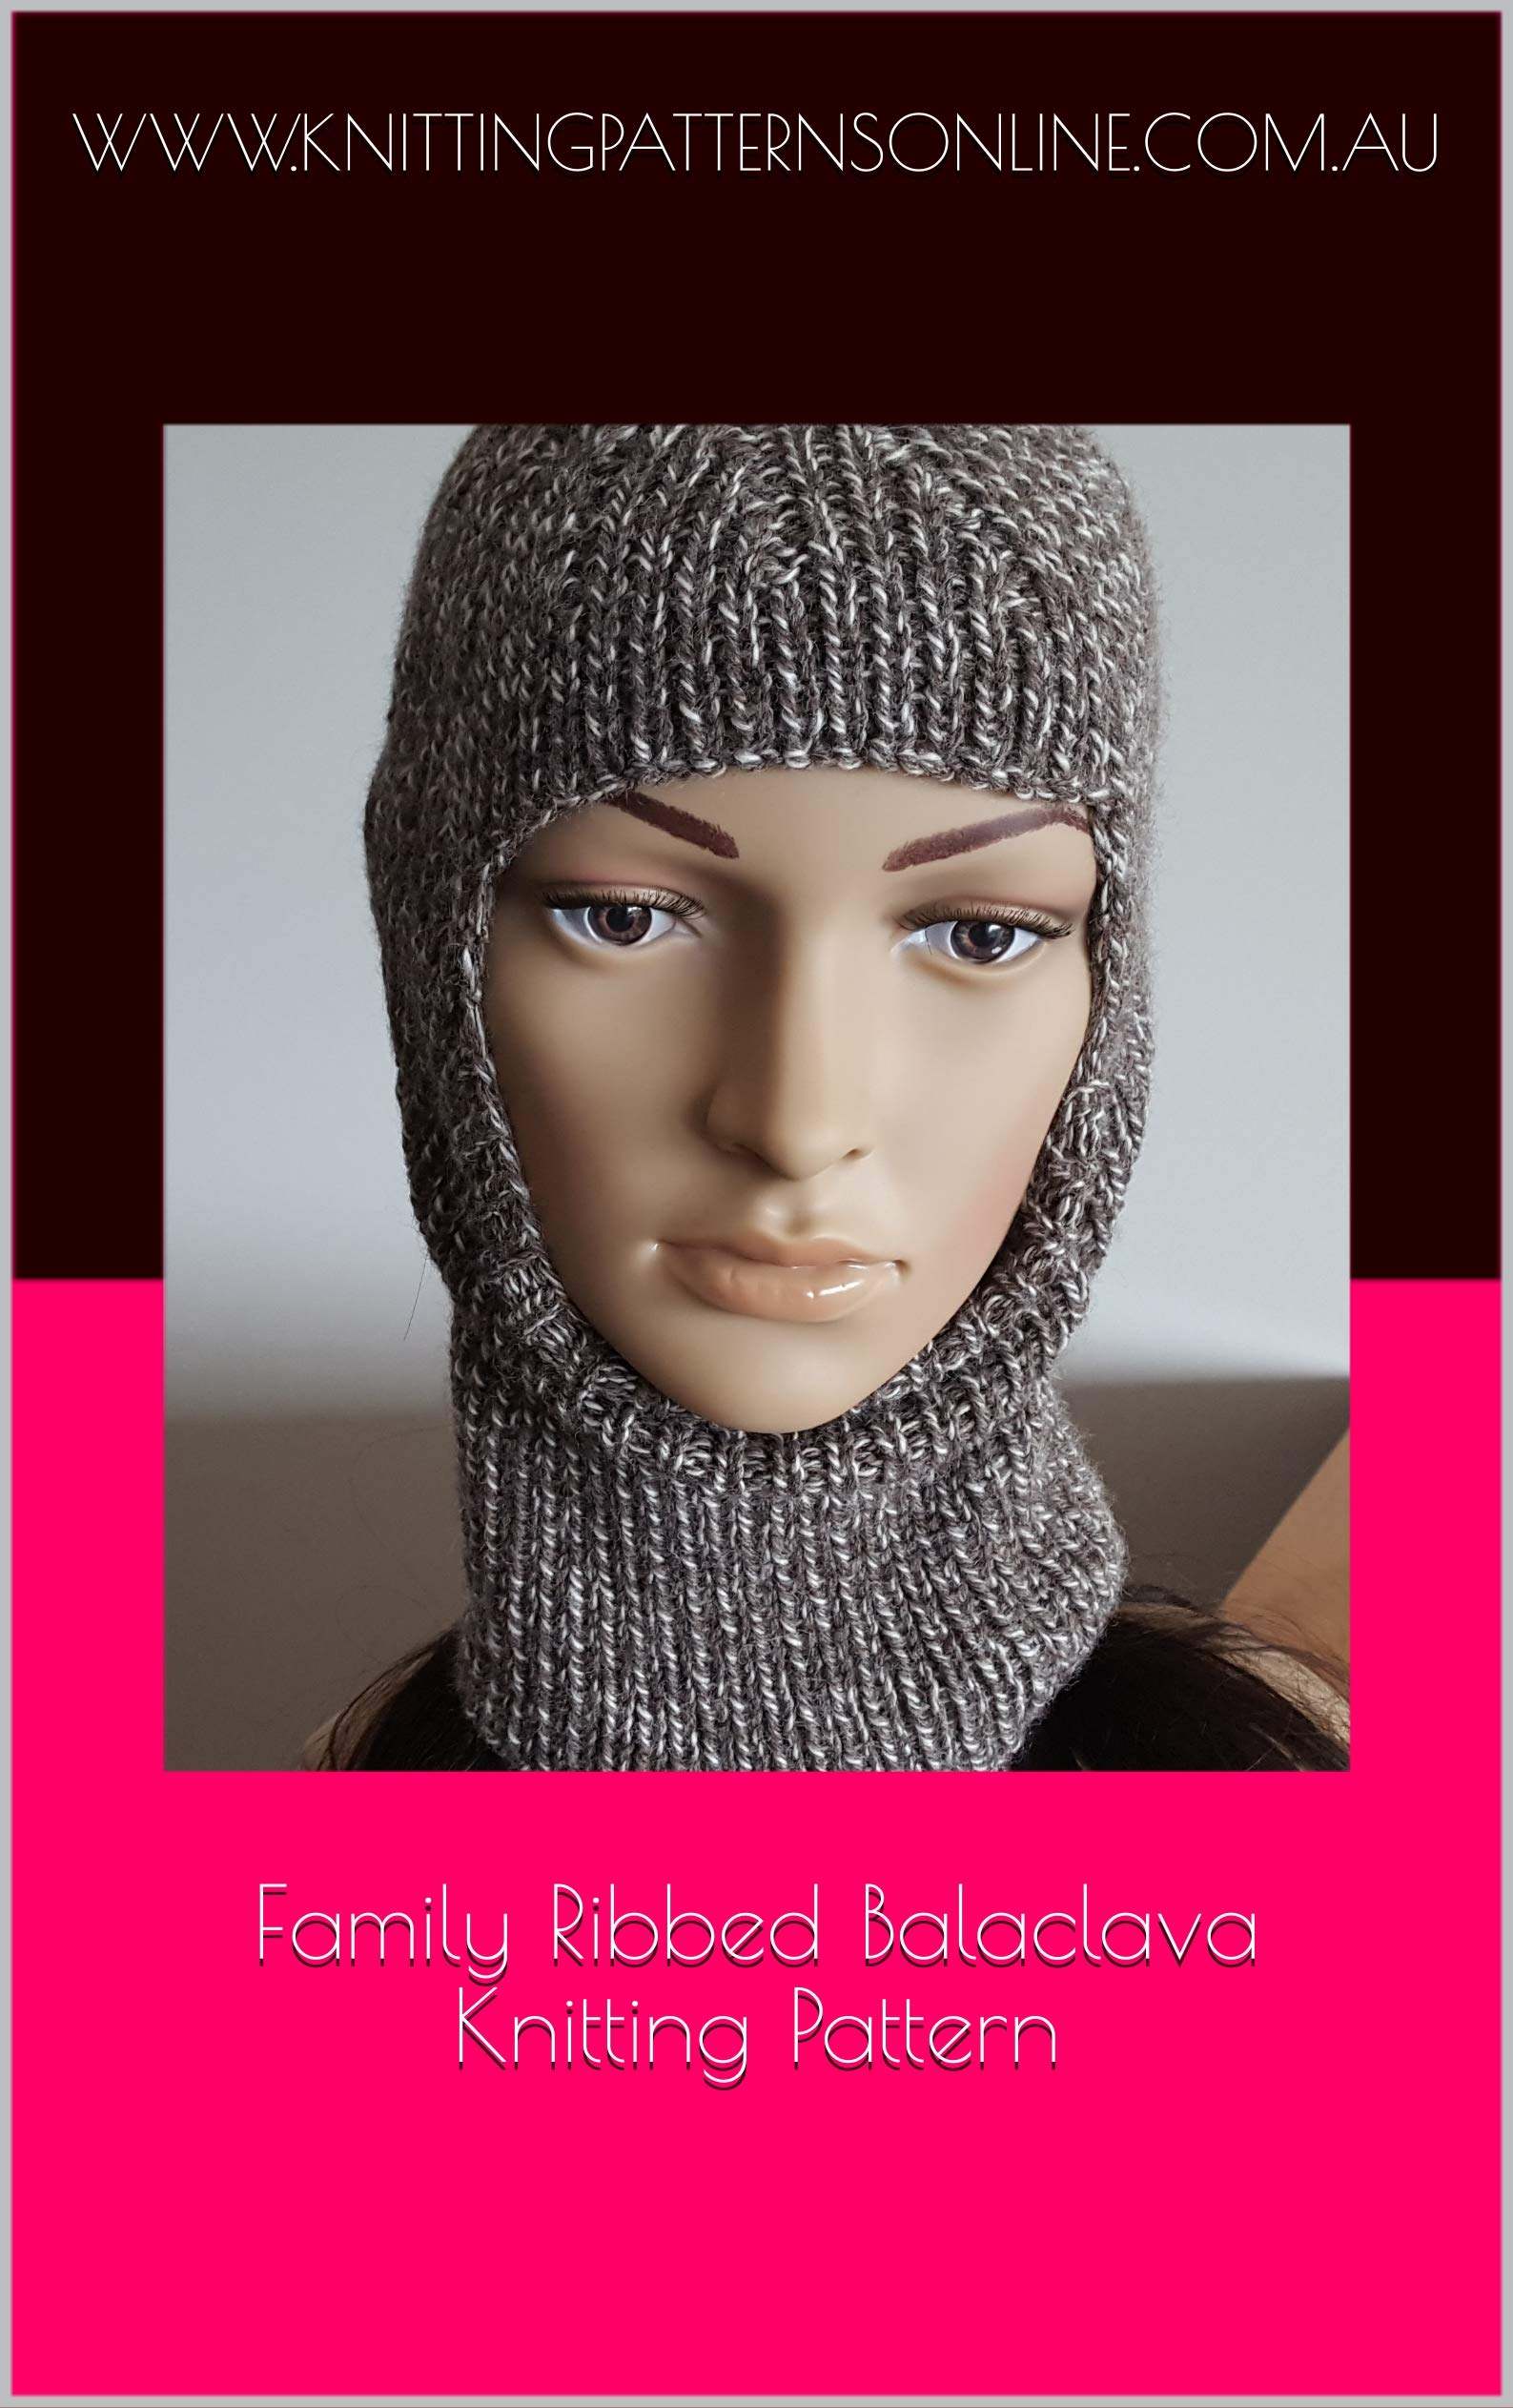 Knitting Pattern Balaclava Balaclava Knitting Patterns Free Knitting Patterns